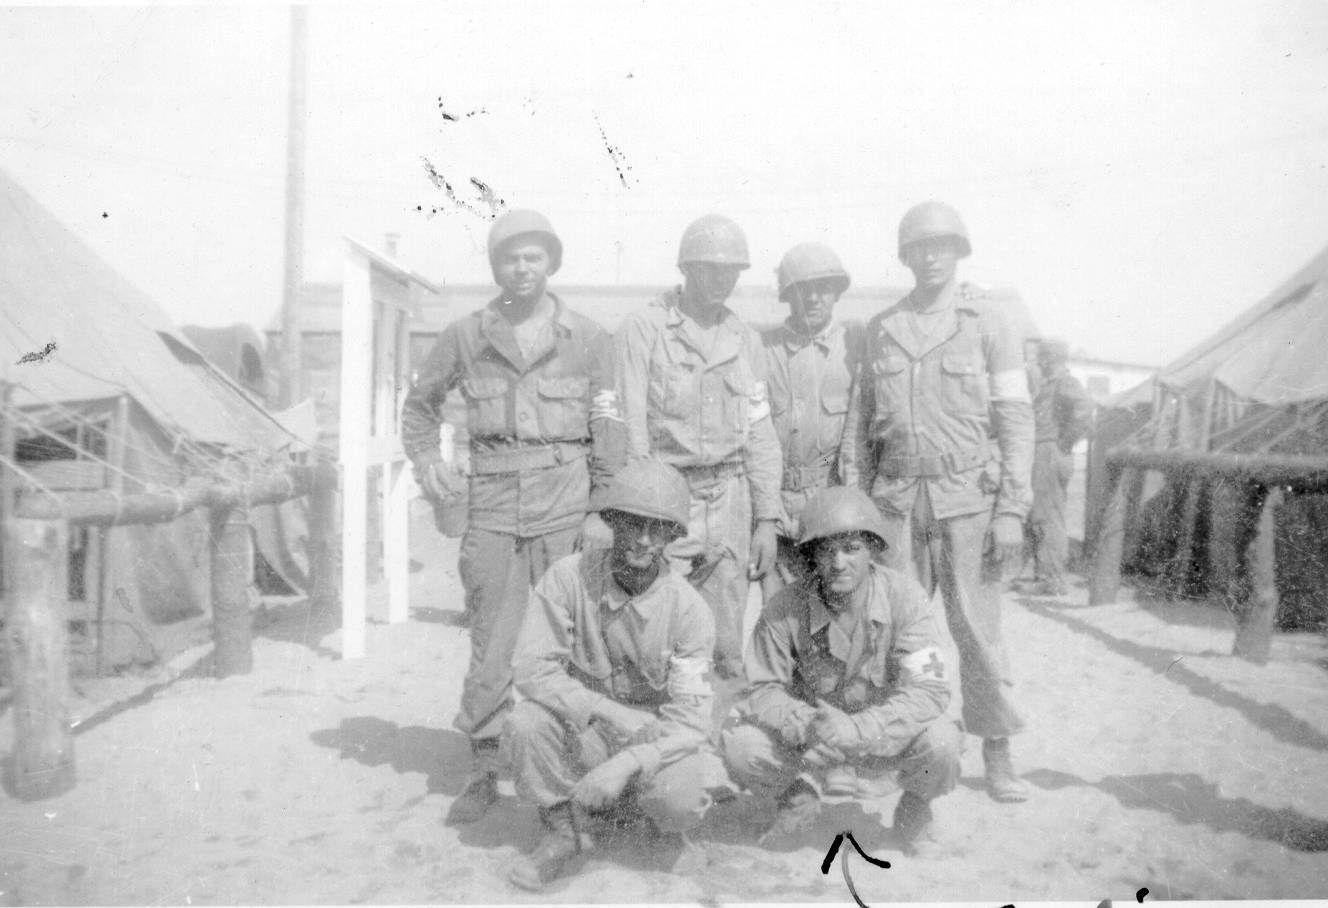 Frankie with his fellow medics in 1944.